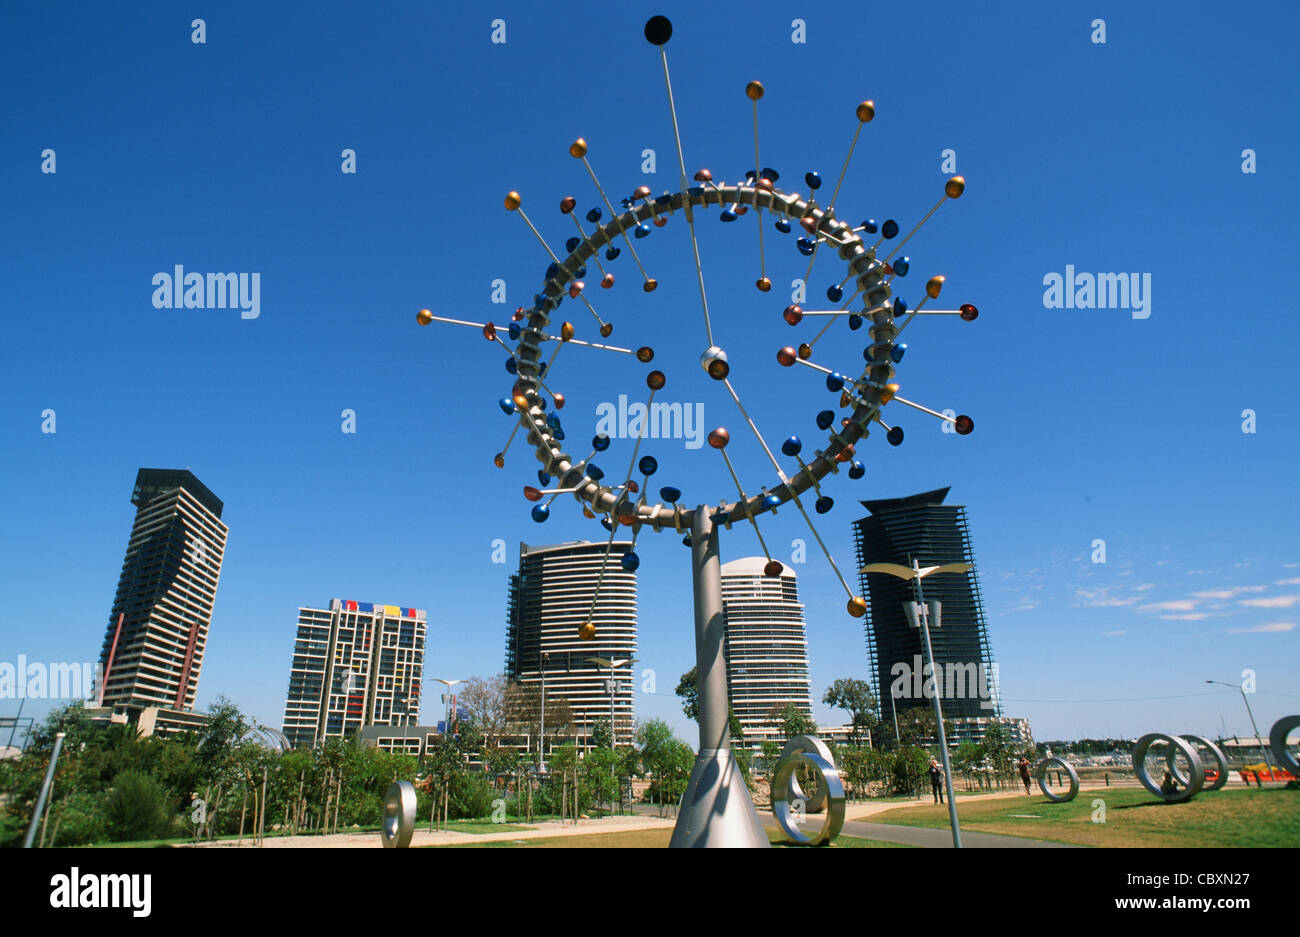 Duncan Stemler's Blowhole at the playground and park of the redeveloped docklands in Melbourne, Victoria, Australia - Stock Image